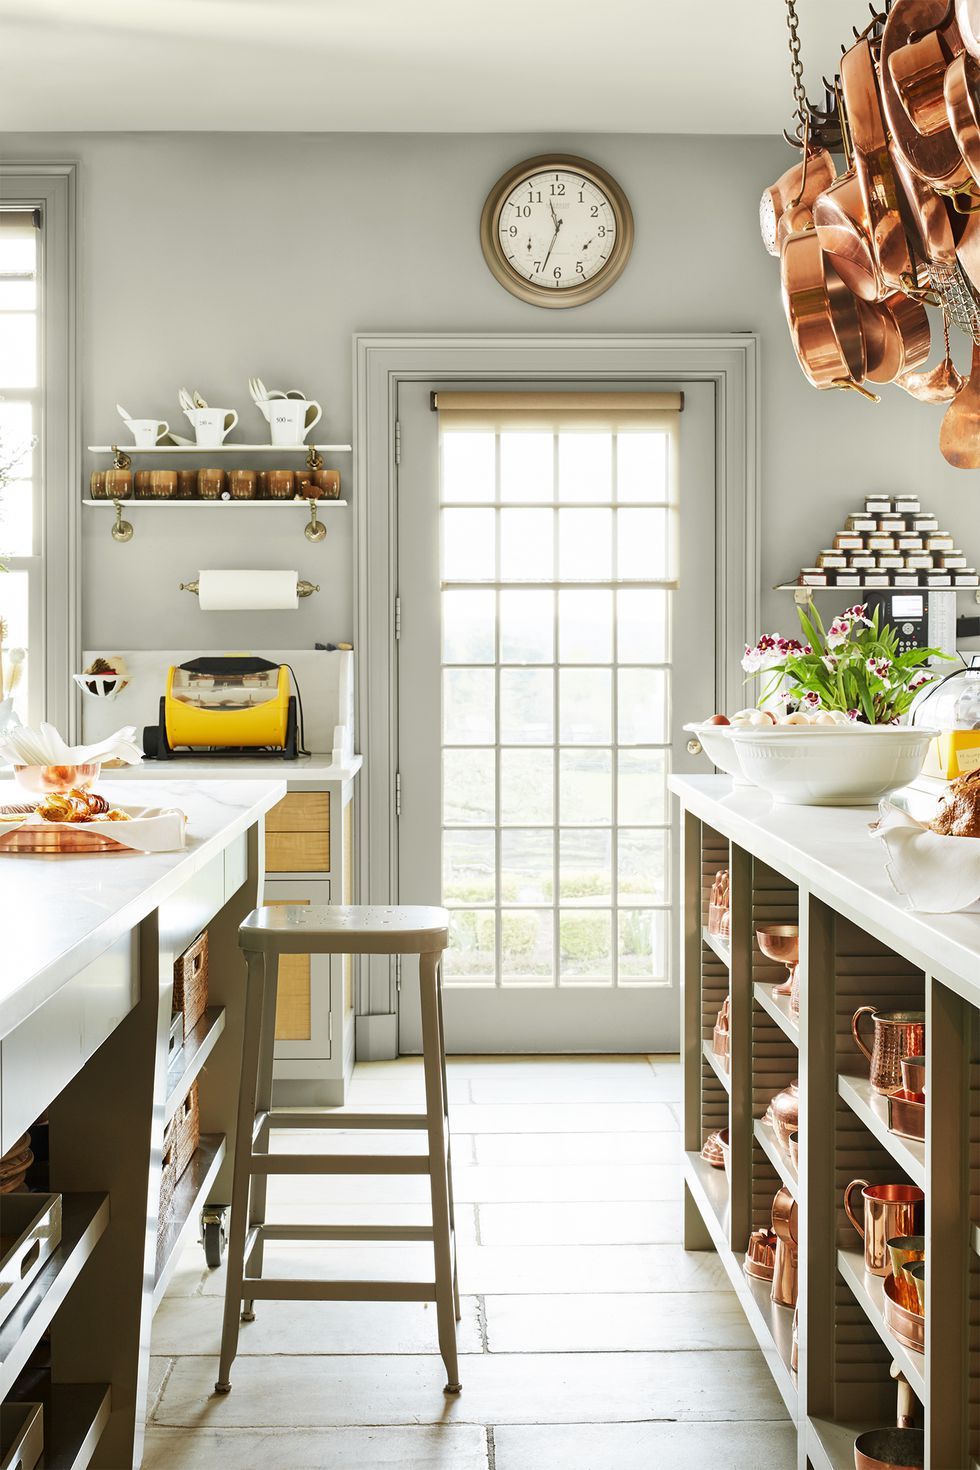 15 Gorgeous Kitchen Trends for 2019 - New Cabinet and Color Design Ideas